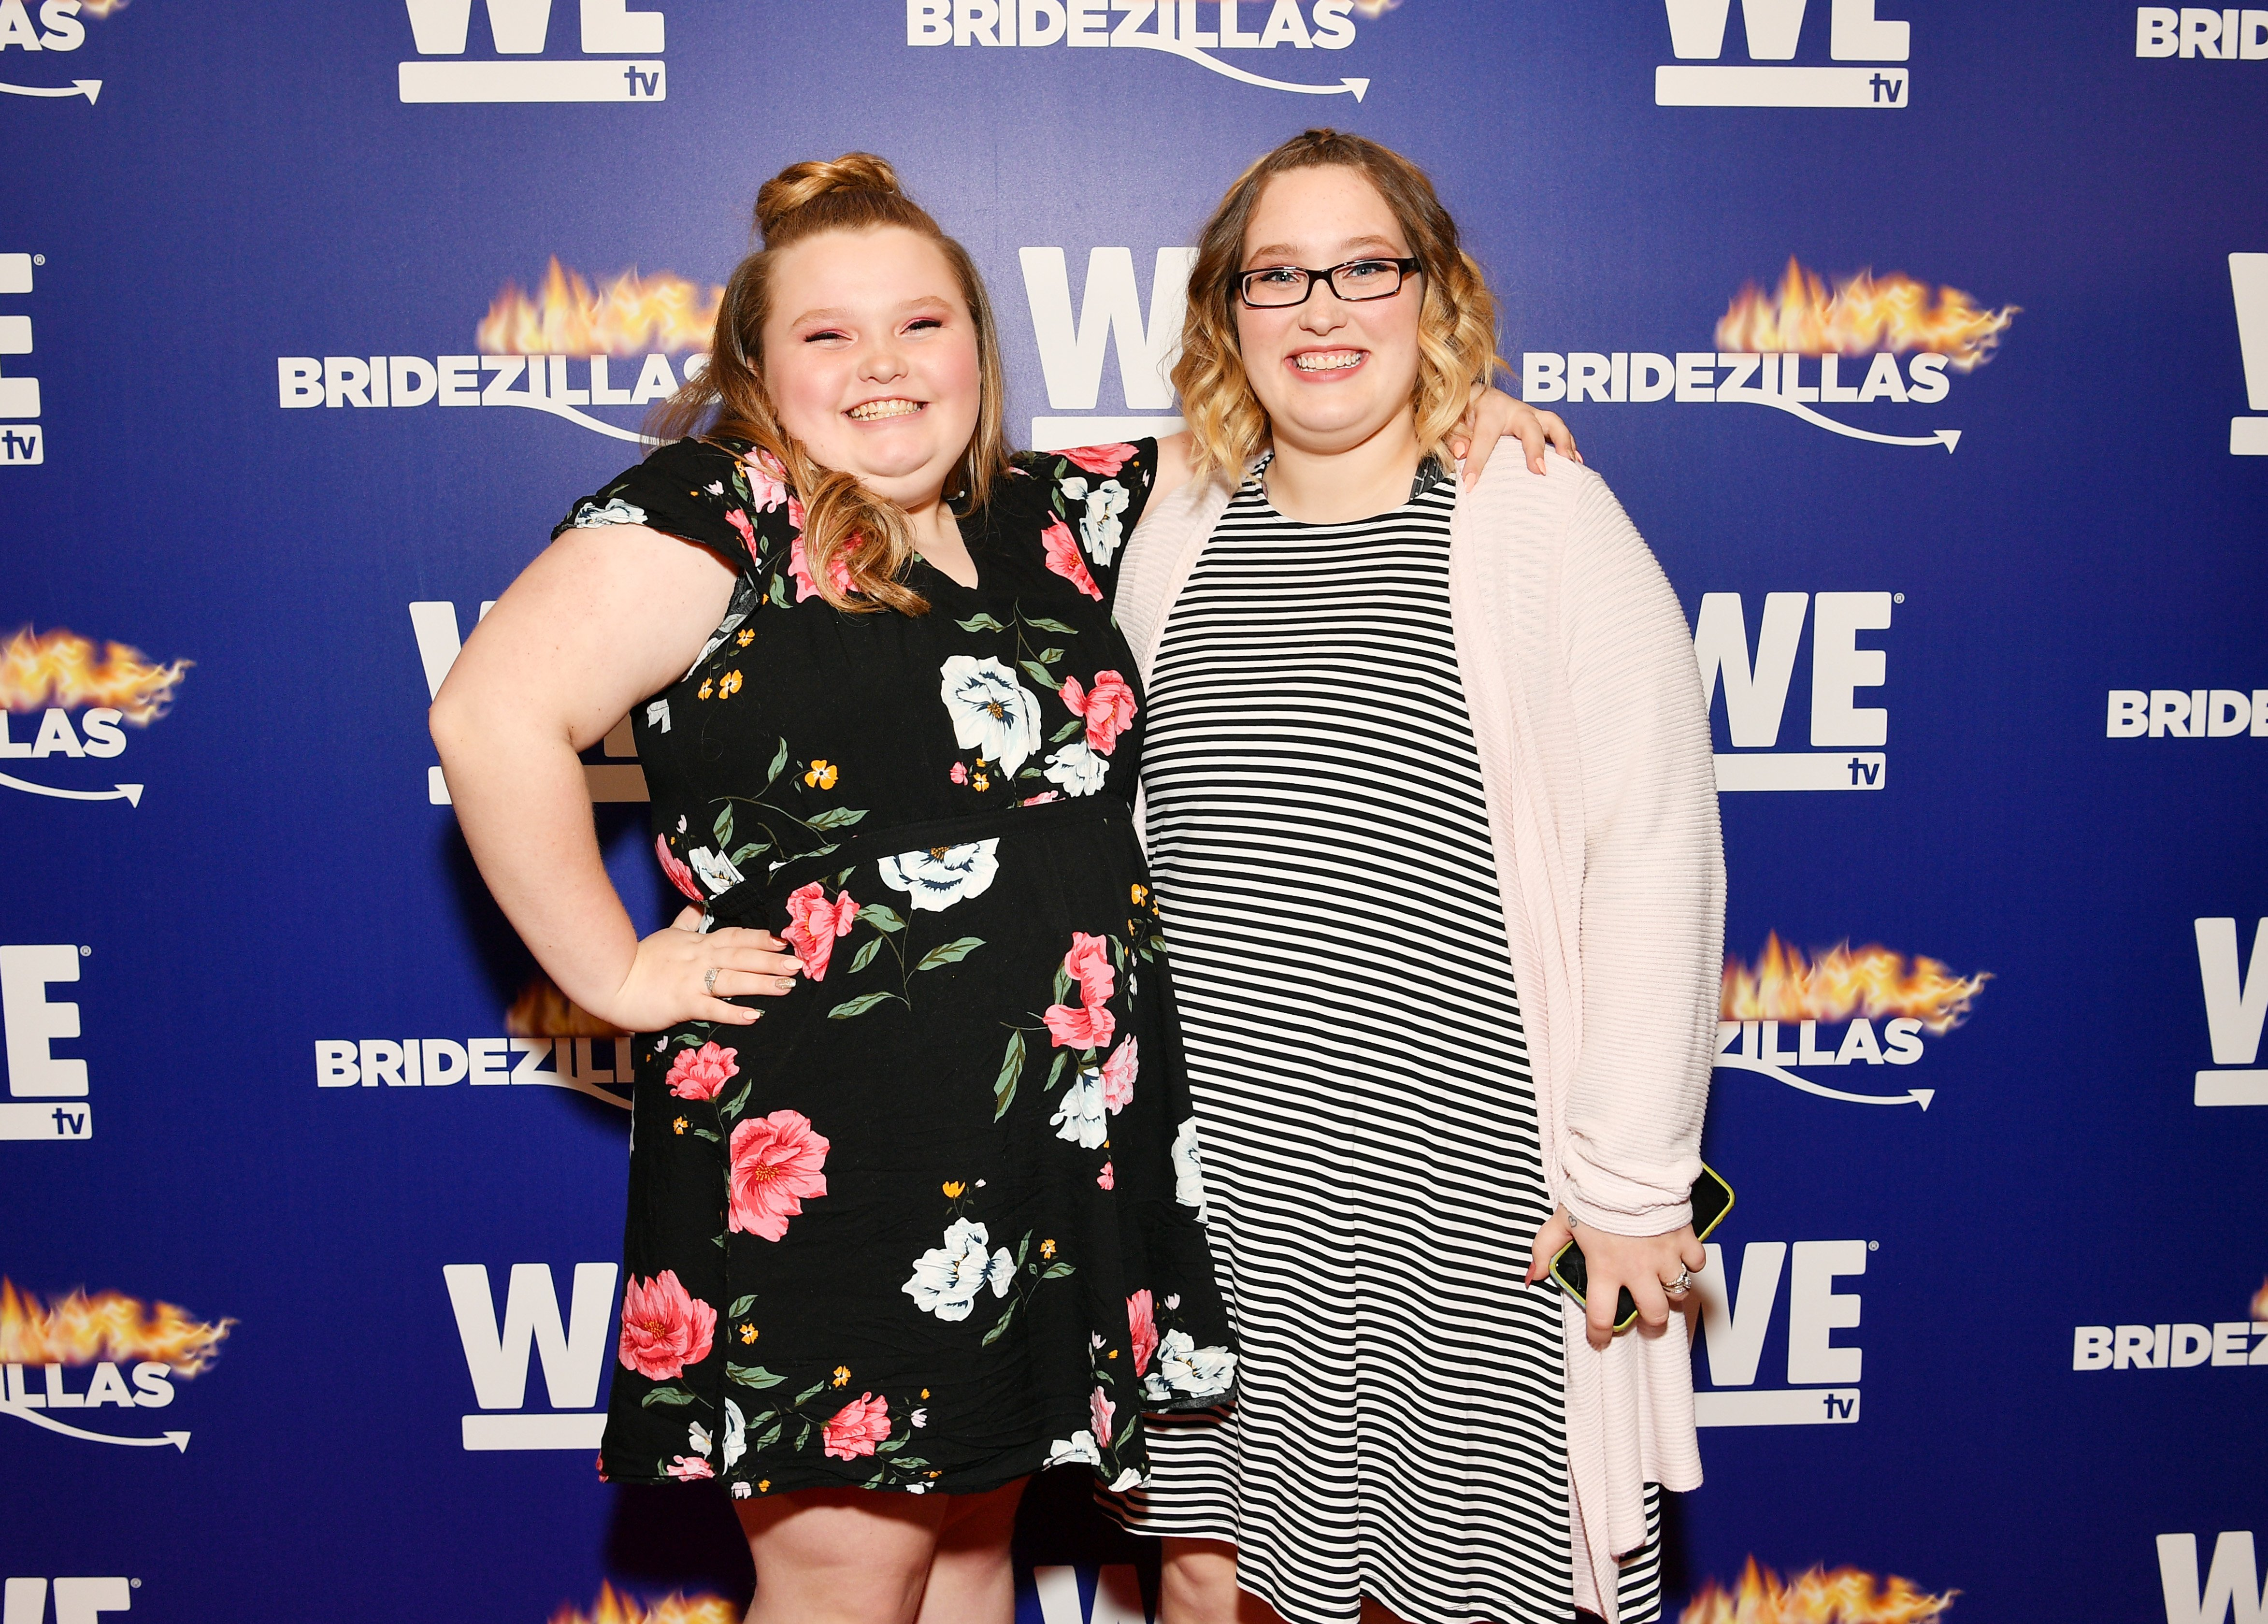 """Alana """"Honey Boo Boo"""" Thompson and Lauryn 'Pumpkin' Shannon at WEtv's premiere of """"Bridezillas"""" on March 13, 2019.   Photo: GettyImages"""